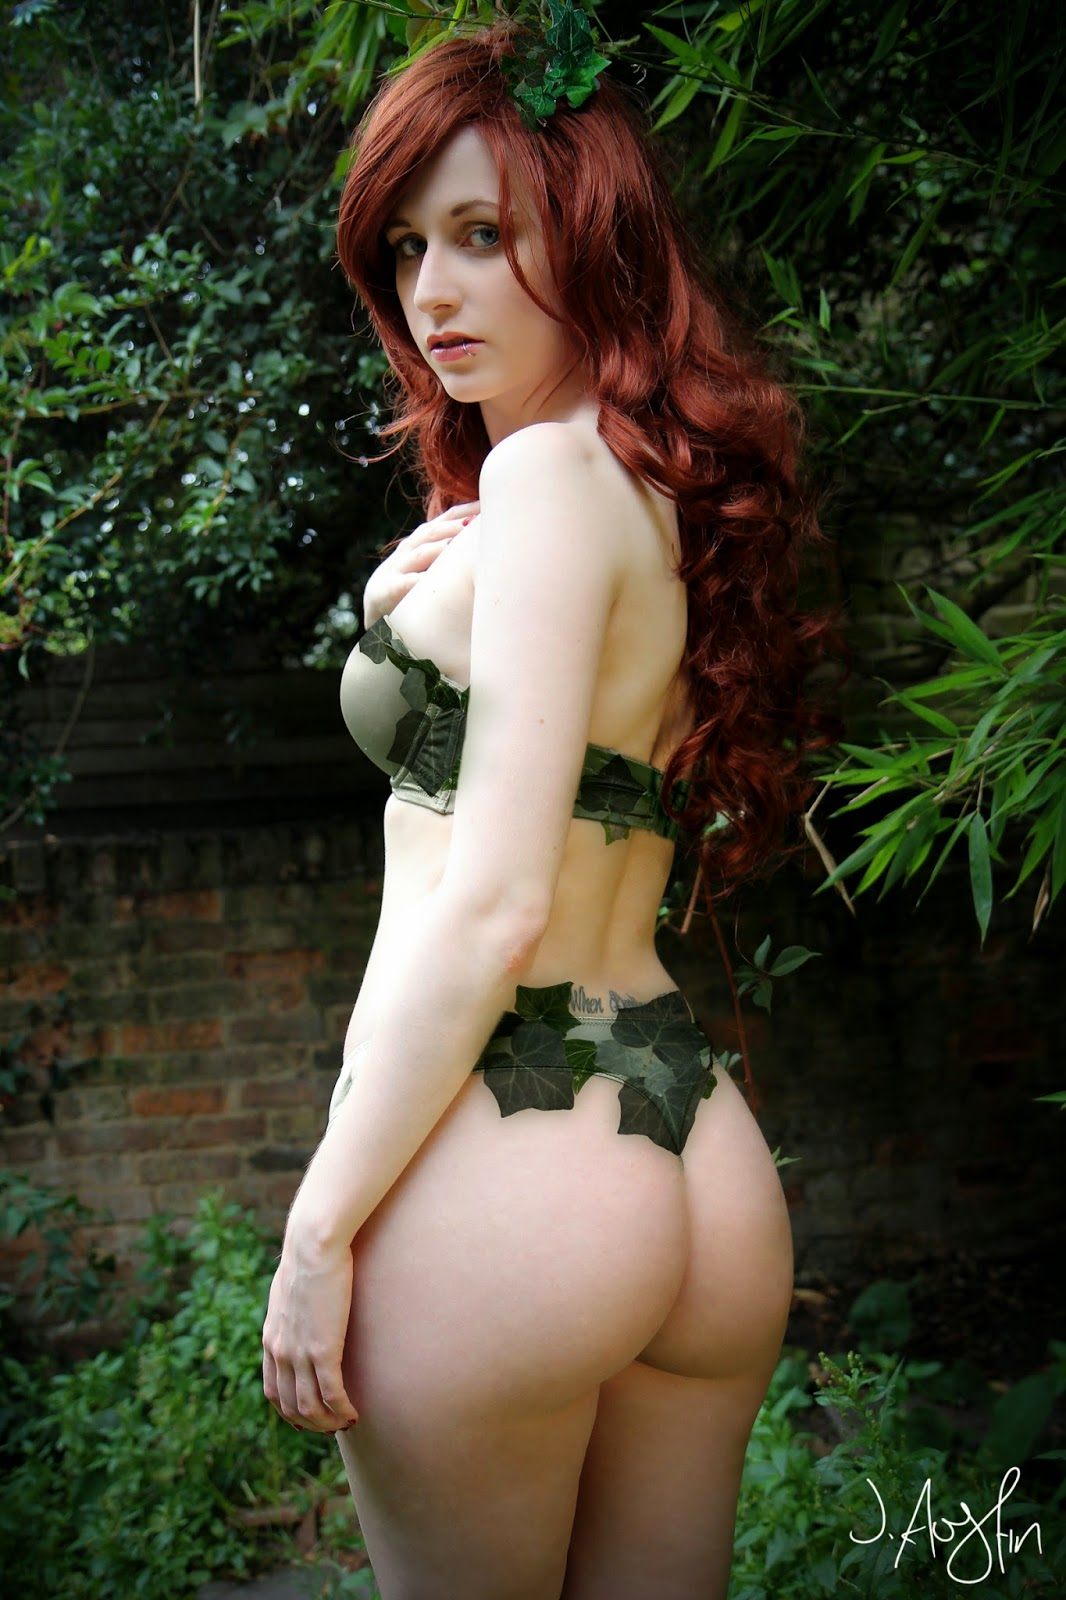 Poison Ivy A4 SIGNED POSTER